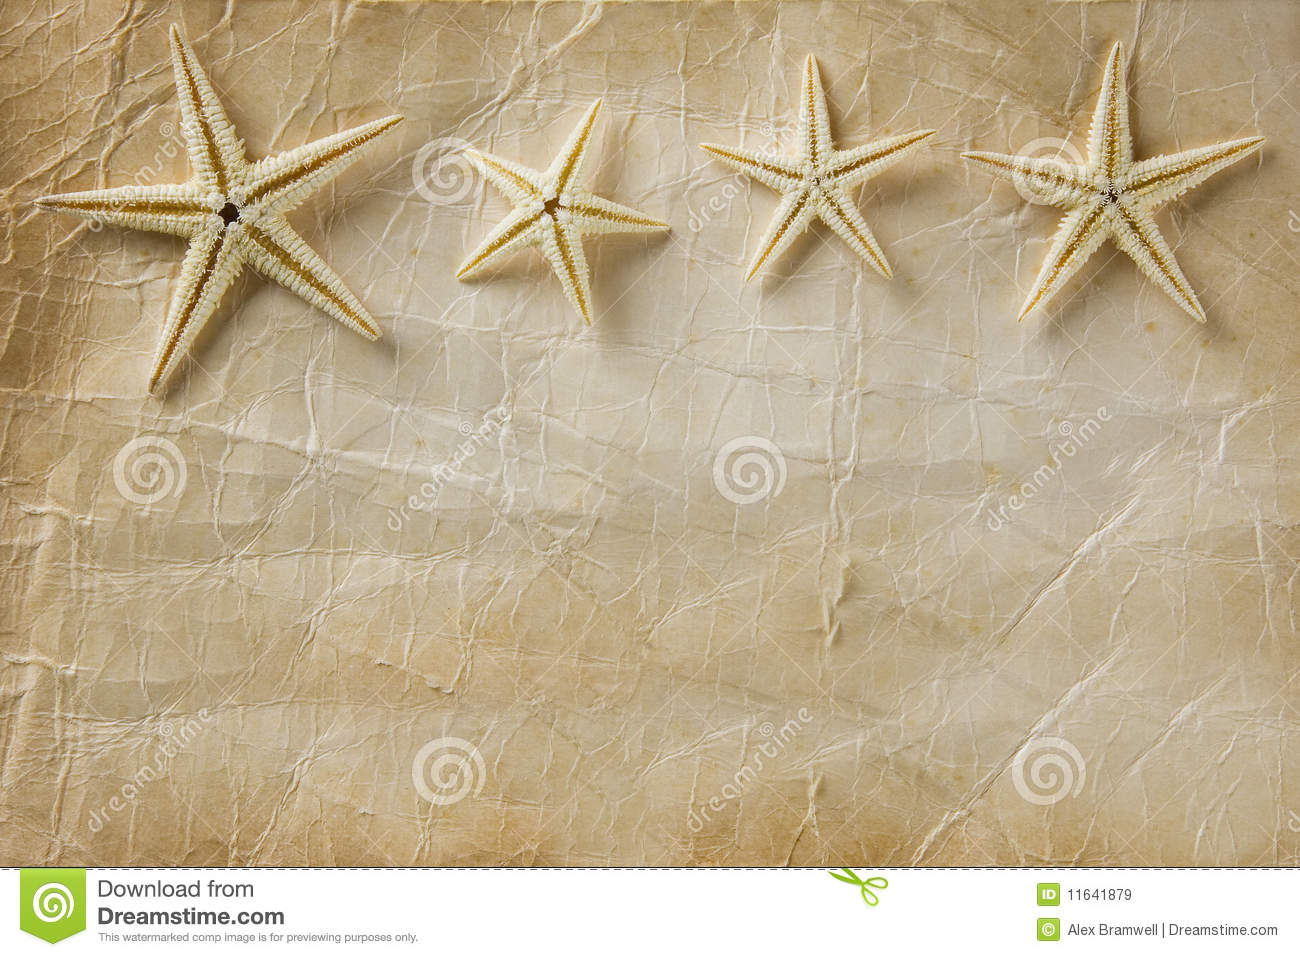 starfish essay Starfish, or sea stars (a less confusing designation, since they are only very distantly related to fish), are marine invertebrates belonging to the kingdom animalia, .